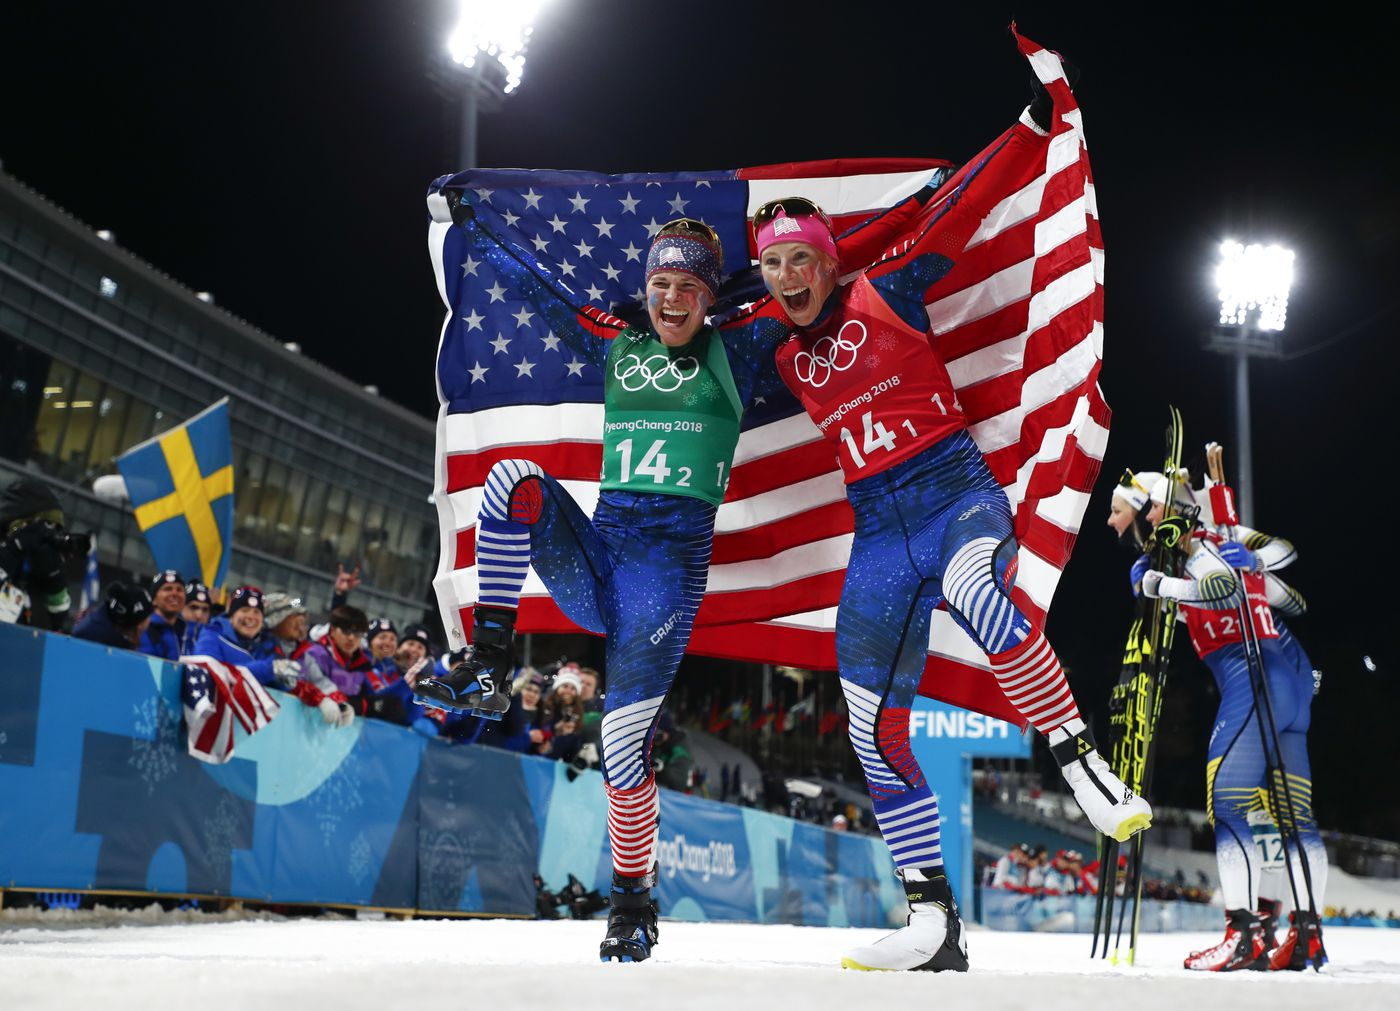 United States' Jessica Diggins, left, and Kikkan Randall celebrate after winning the gold medal in the women's team sprint freestyle cross-country skiing final at the 2018 Winter Olympics in Pyeongchang, South Korea, Wednesday, Feb. 21, 2018. (AP Photo/Matthias Schrader)